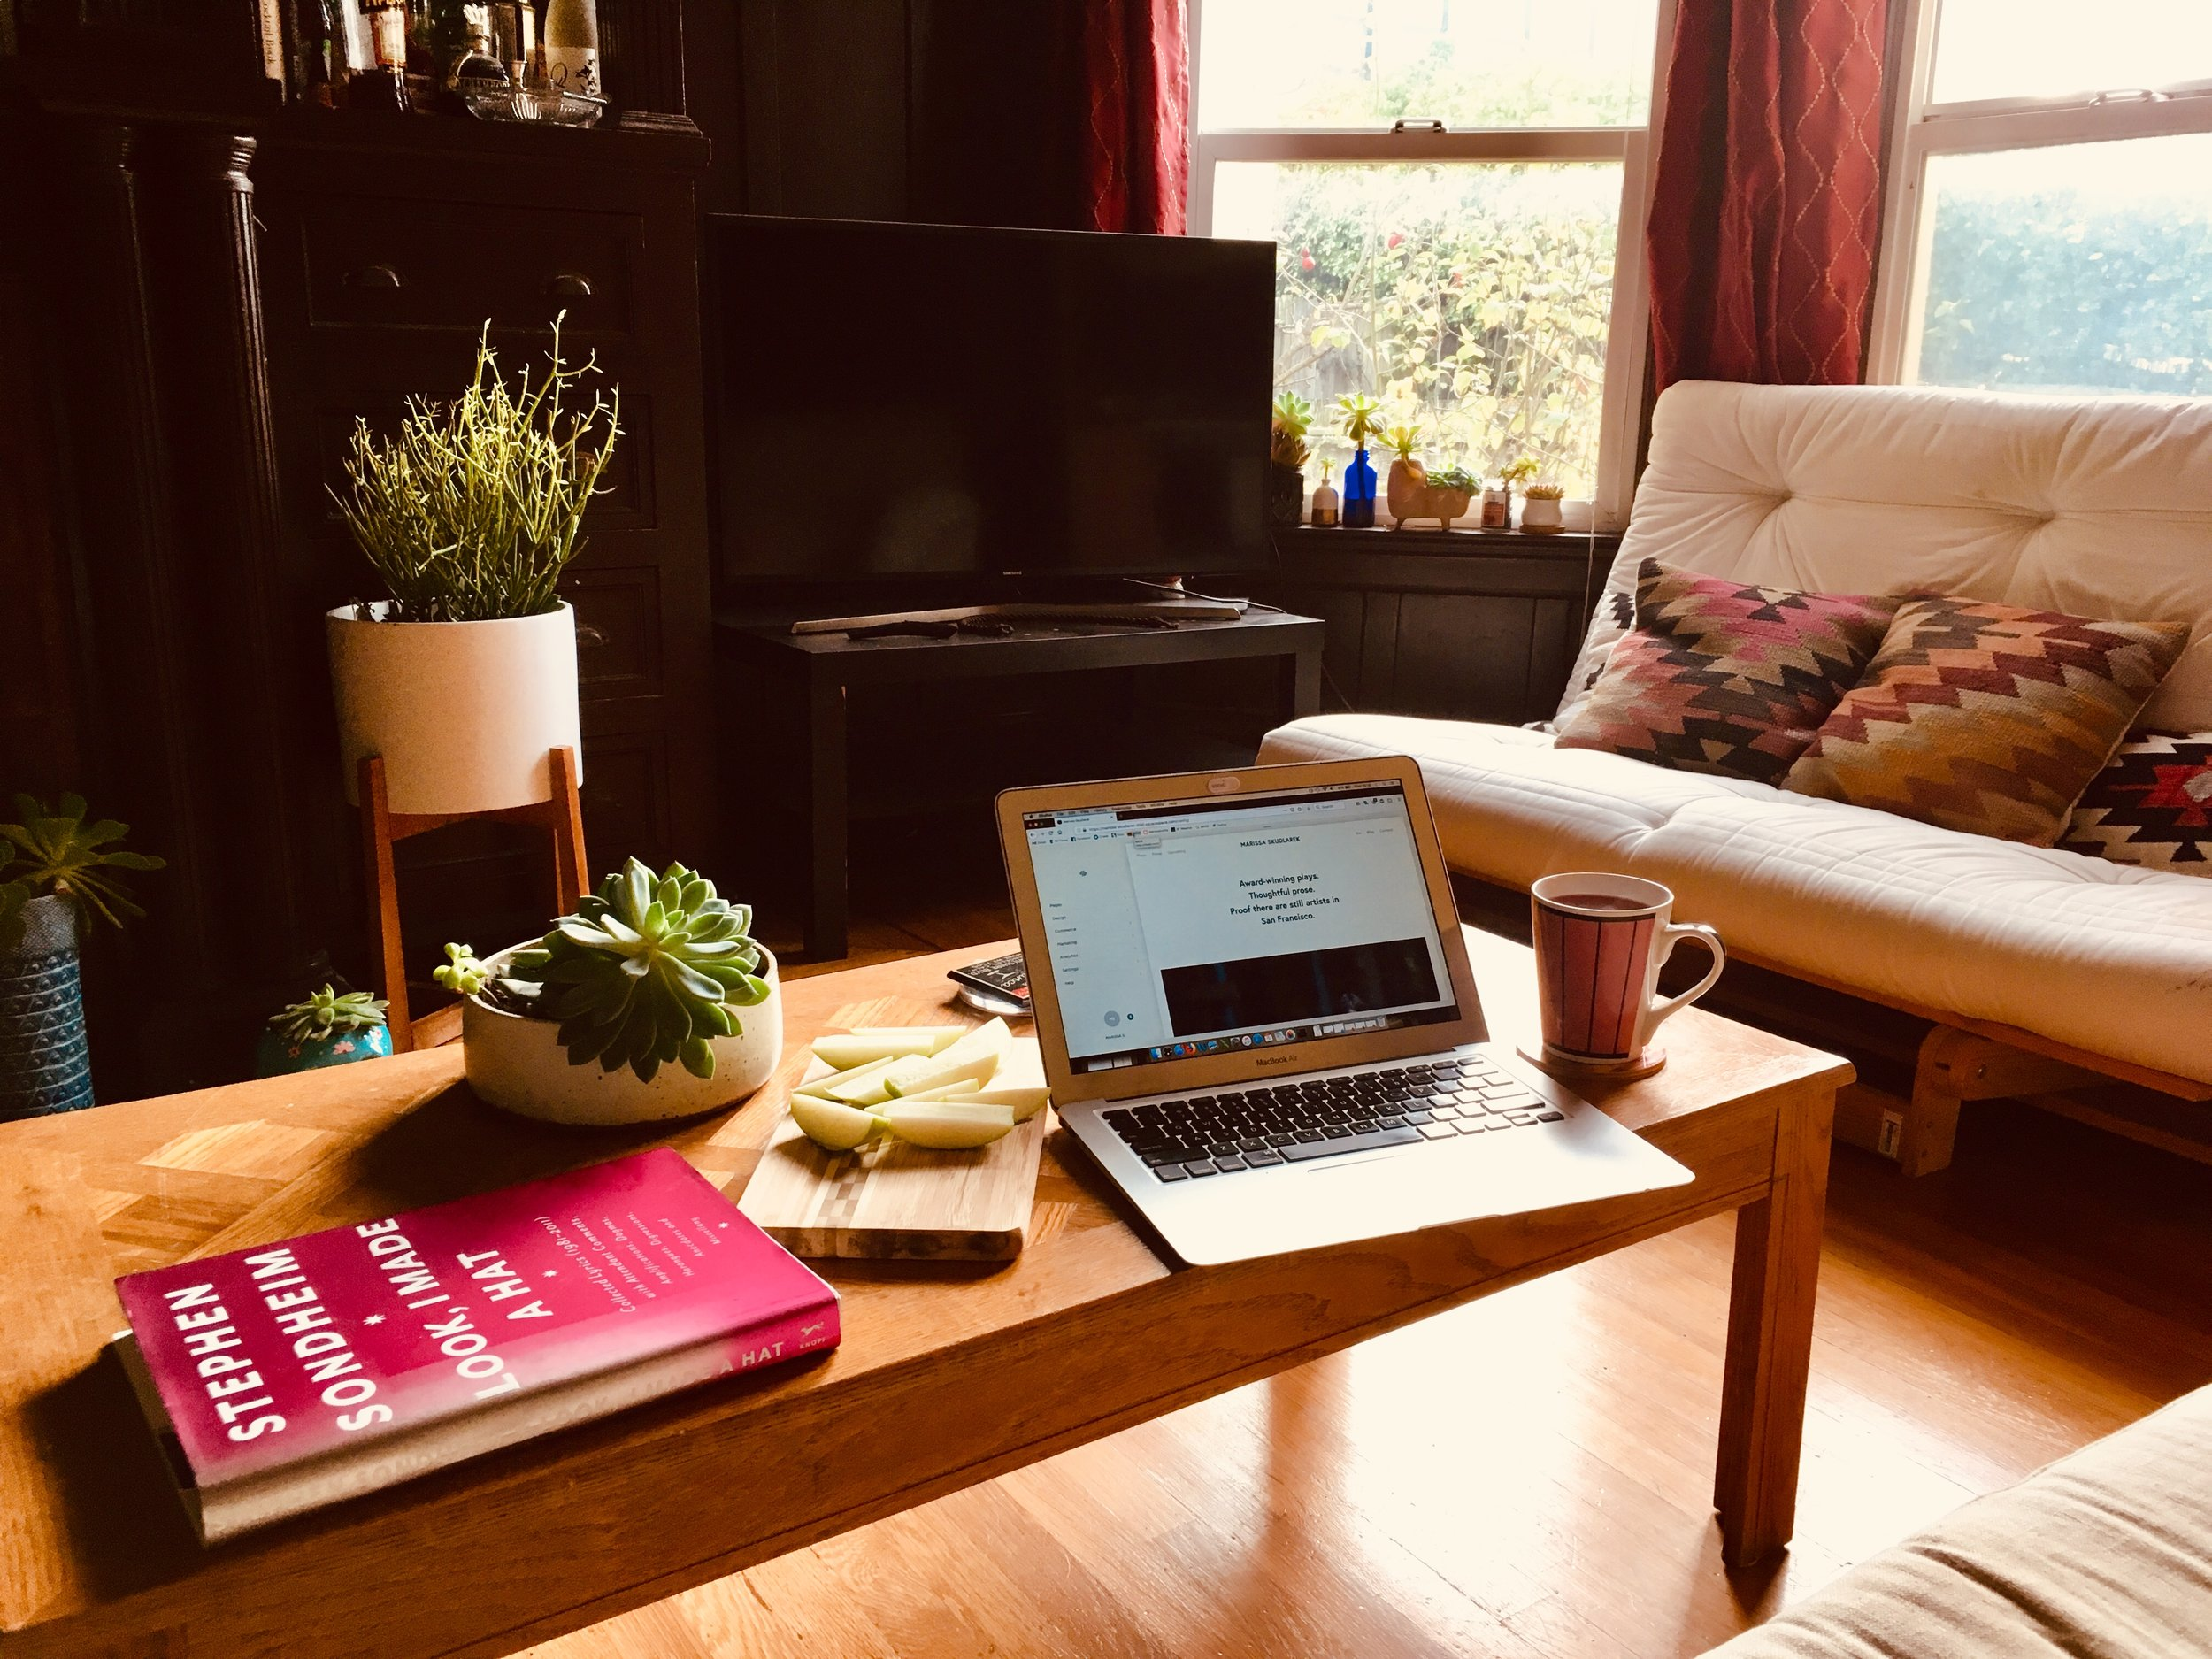 My desk is too much of a mess to show you, so here is my living room at a time when I'm not used to hanging out in it: midweek, midafternoon.